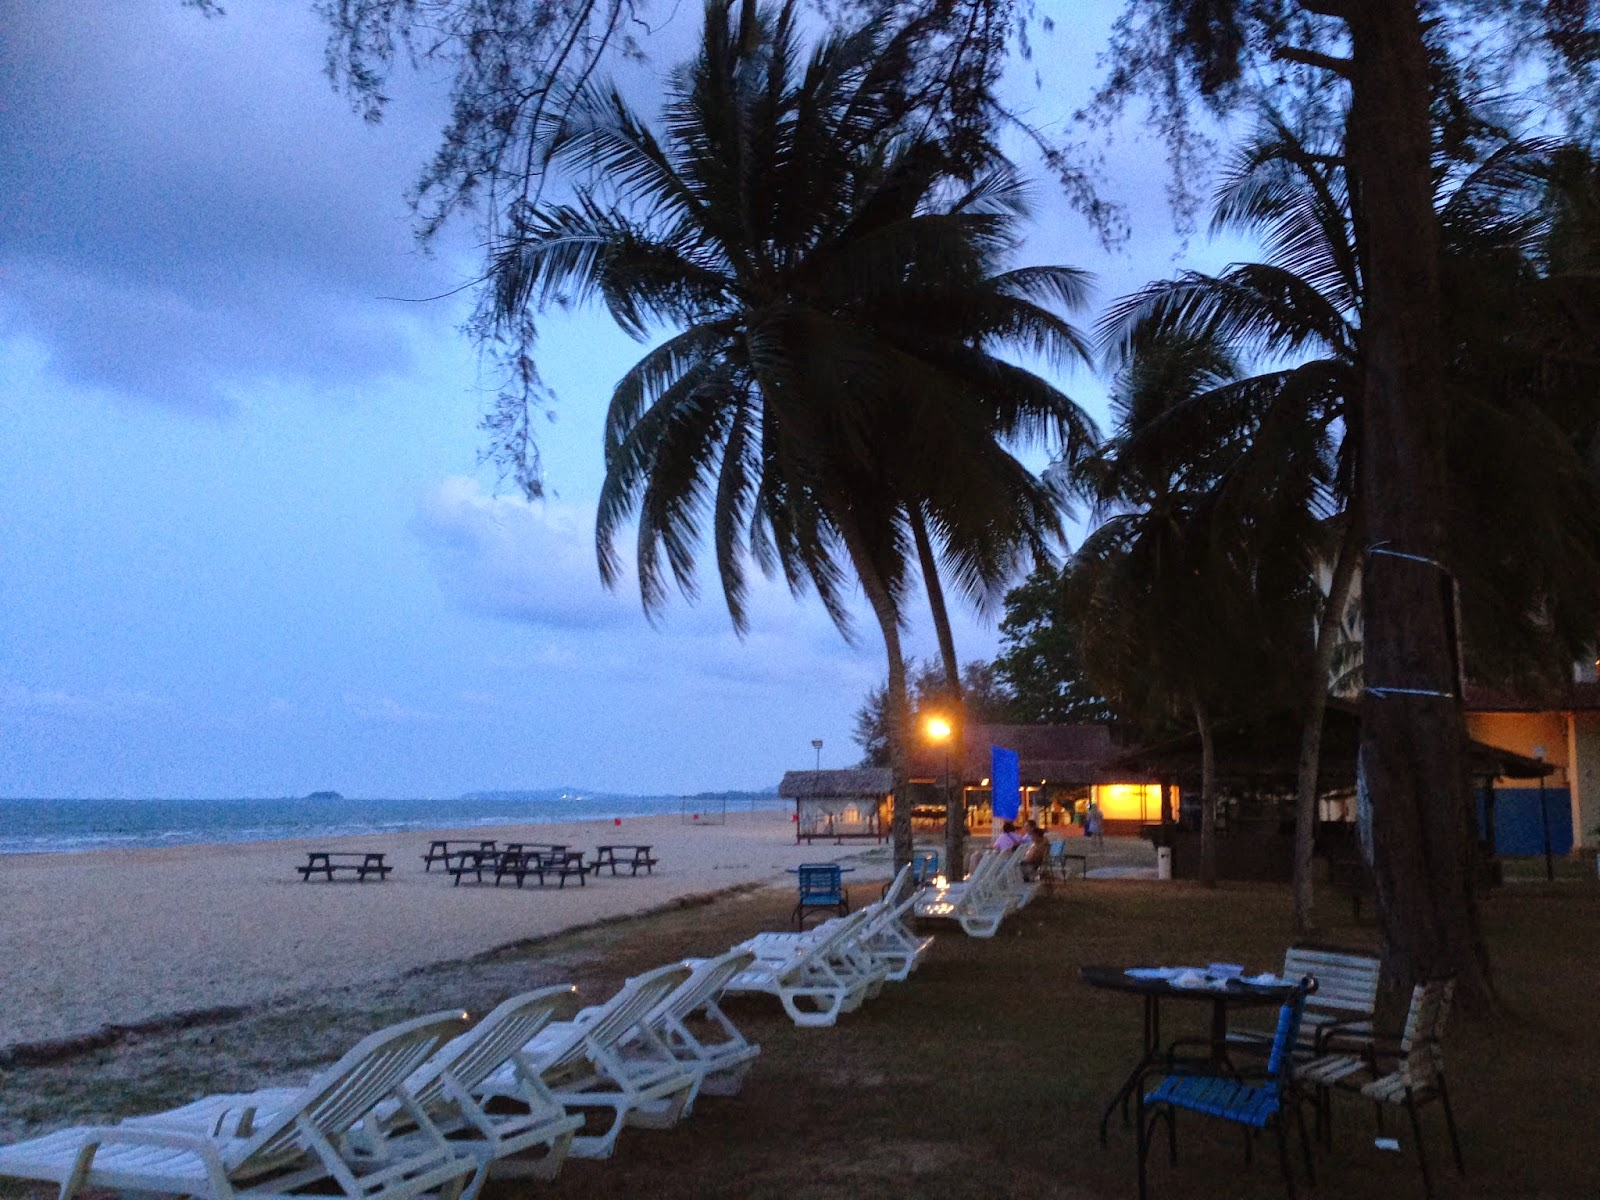 The Legend Resort Cherating Sundeck by the beach